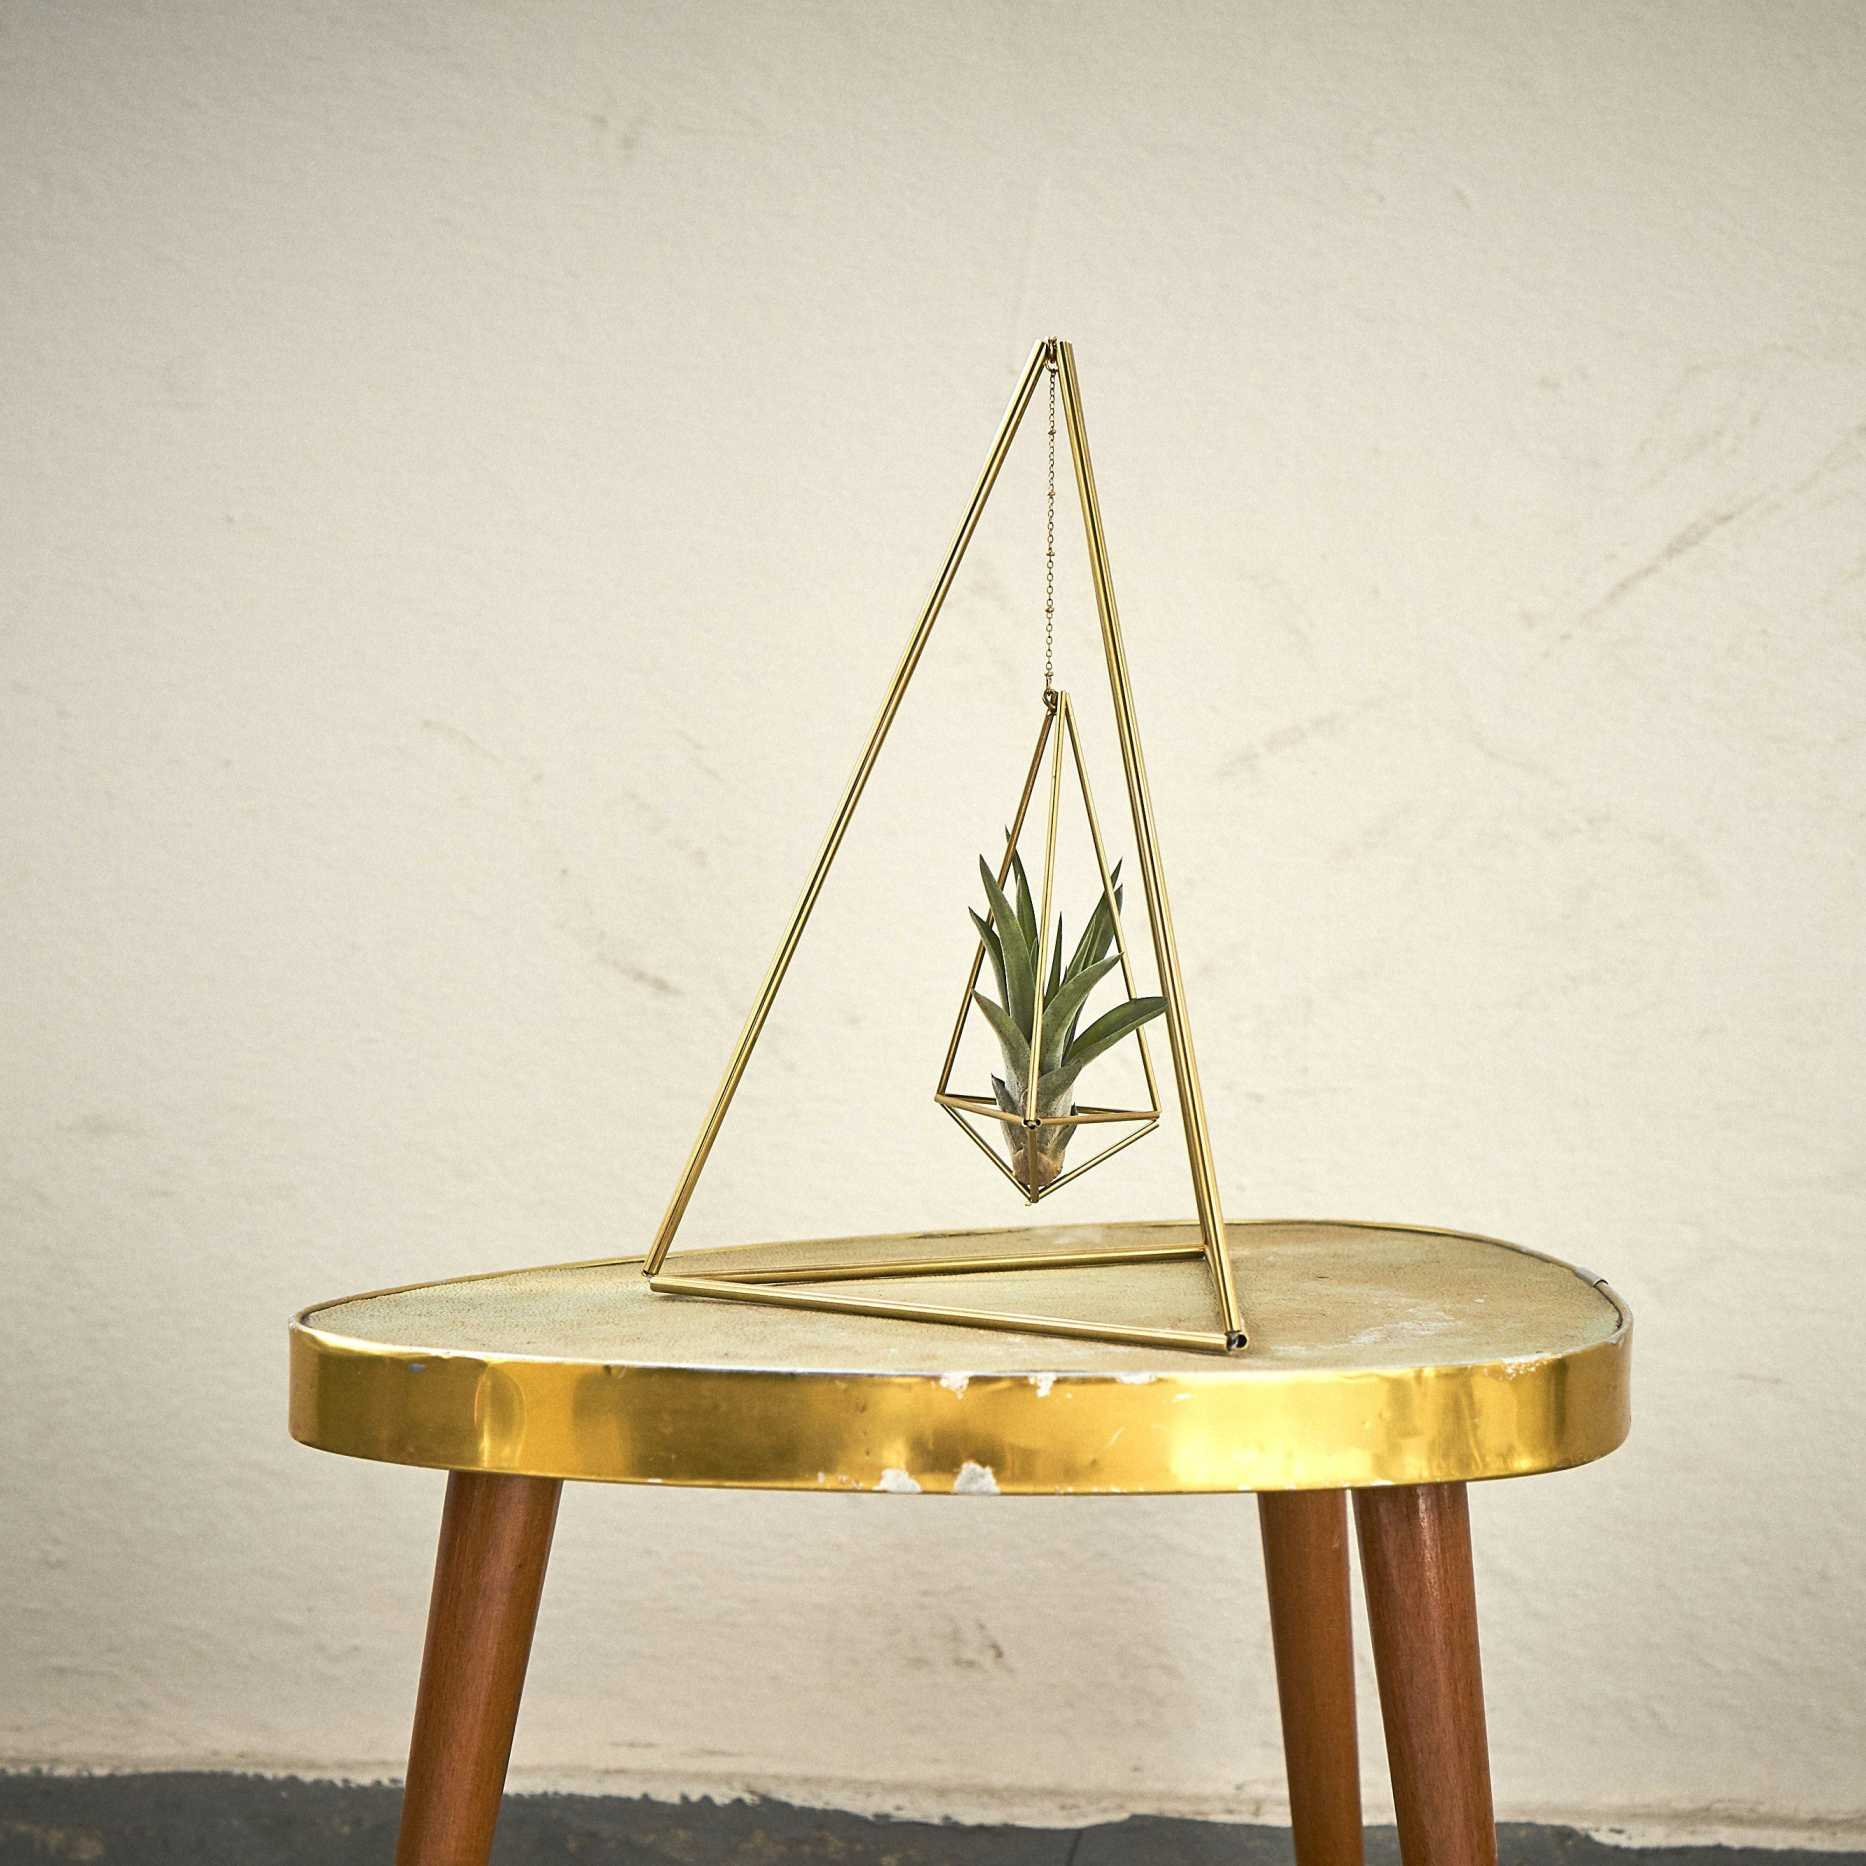 Gold Air Plant Holder - Tetrahedron Himmeli 02 Himmeli Fuxigold